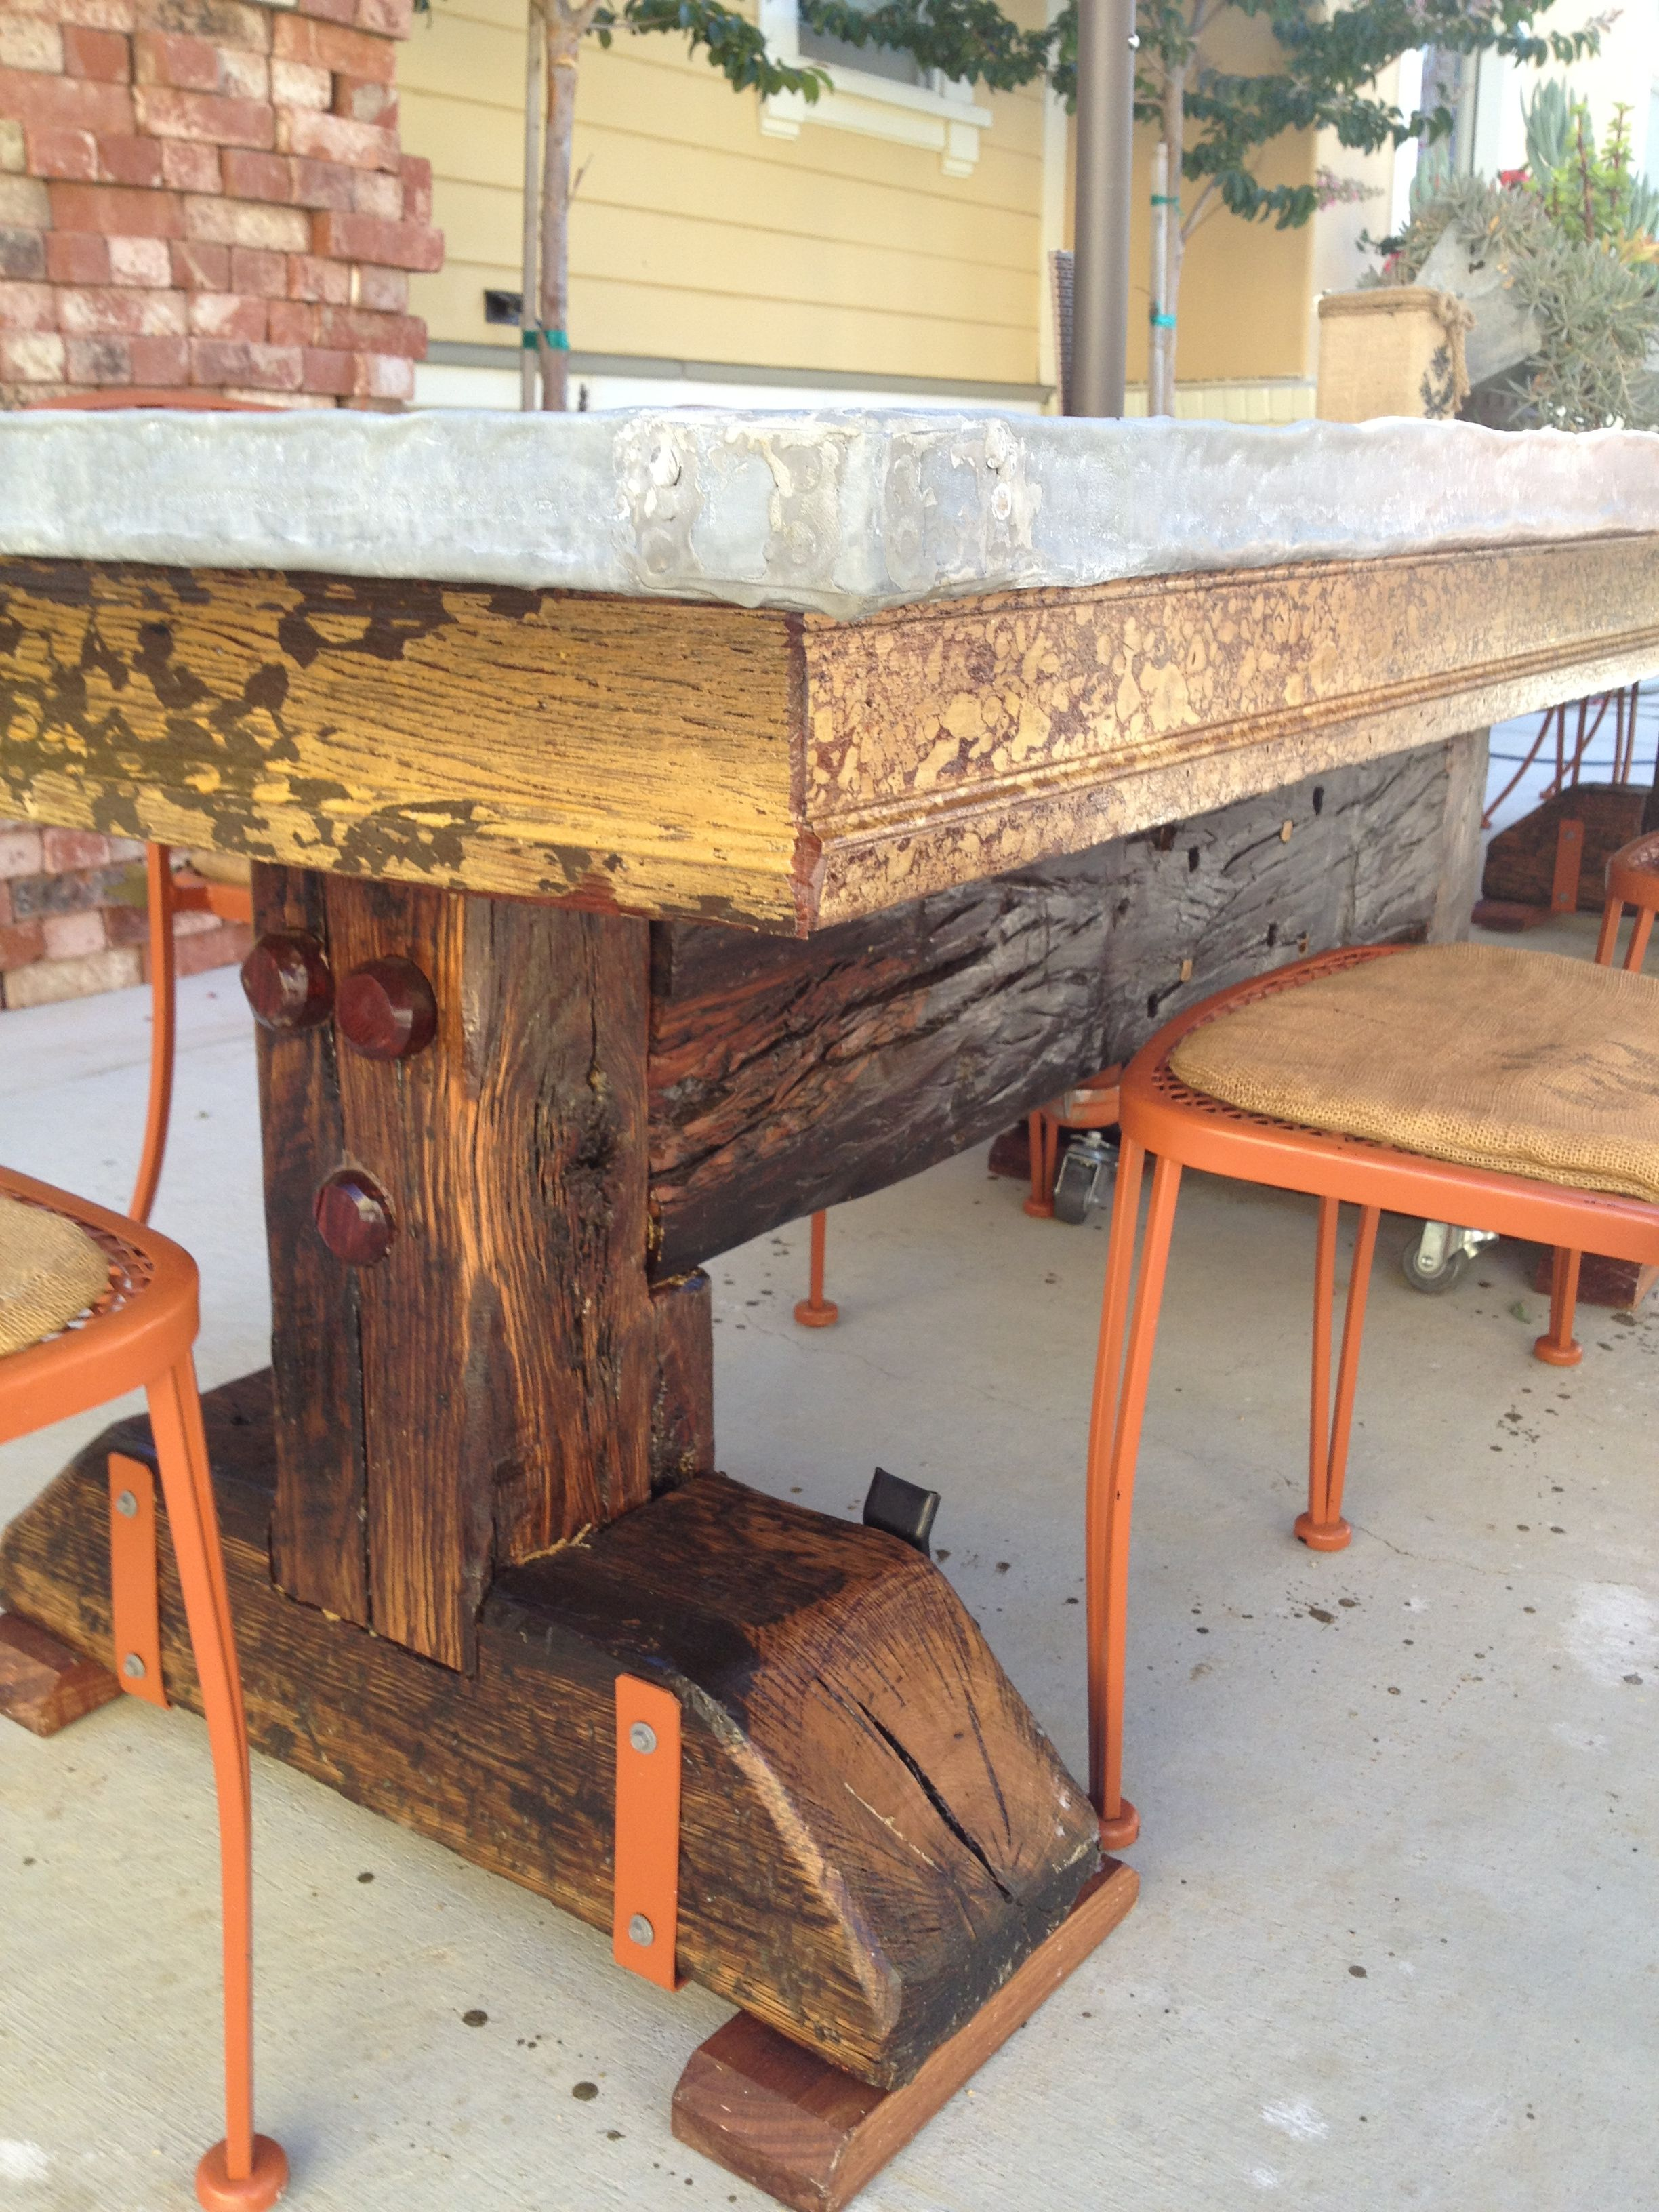 Railroad Tie Table Leg Diy Table Inspiration Diy Table Legs Diy Wood Projects Railroad Ties